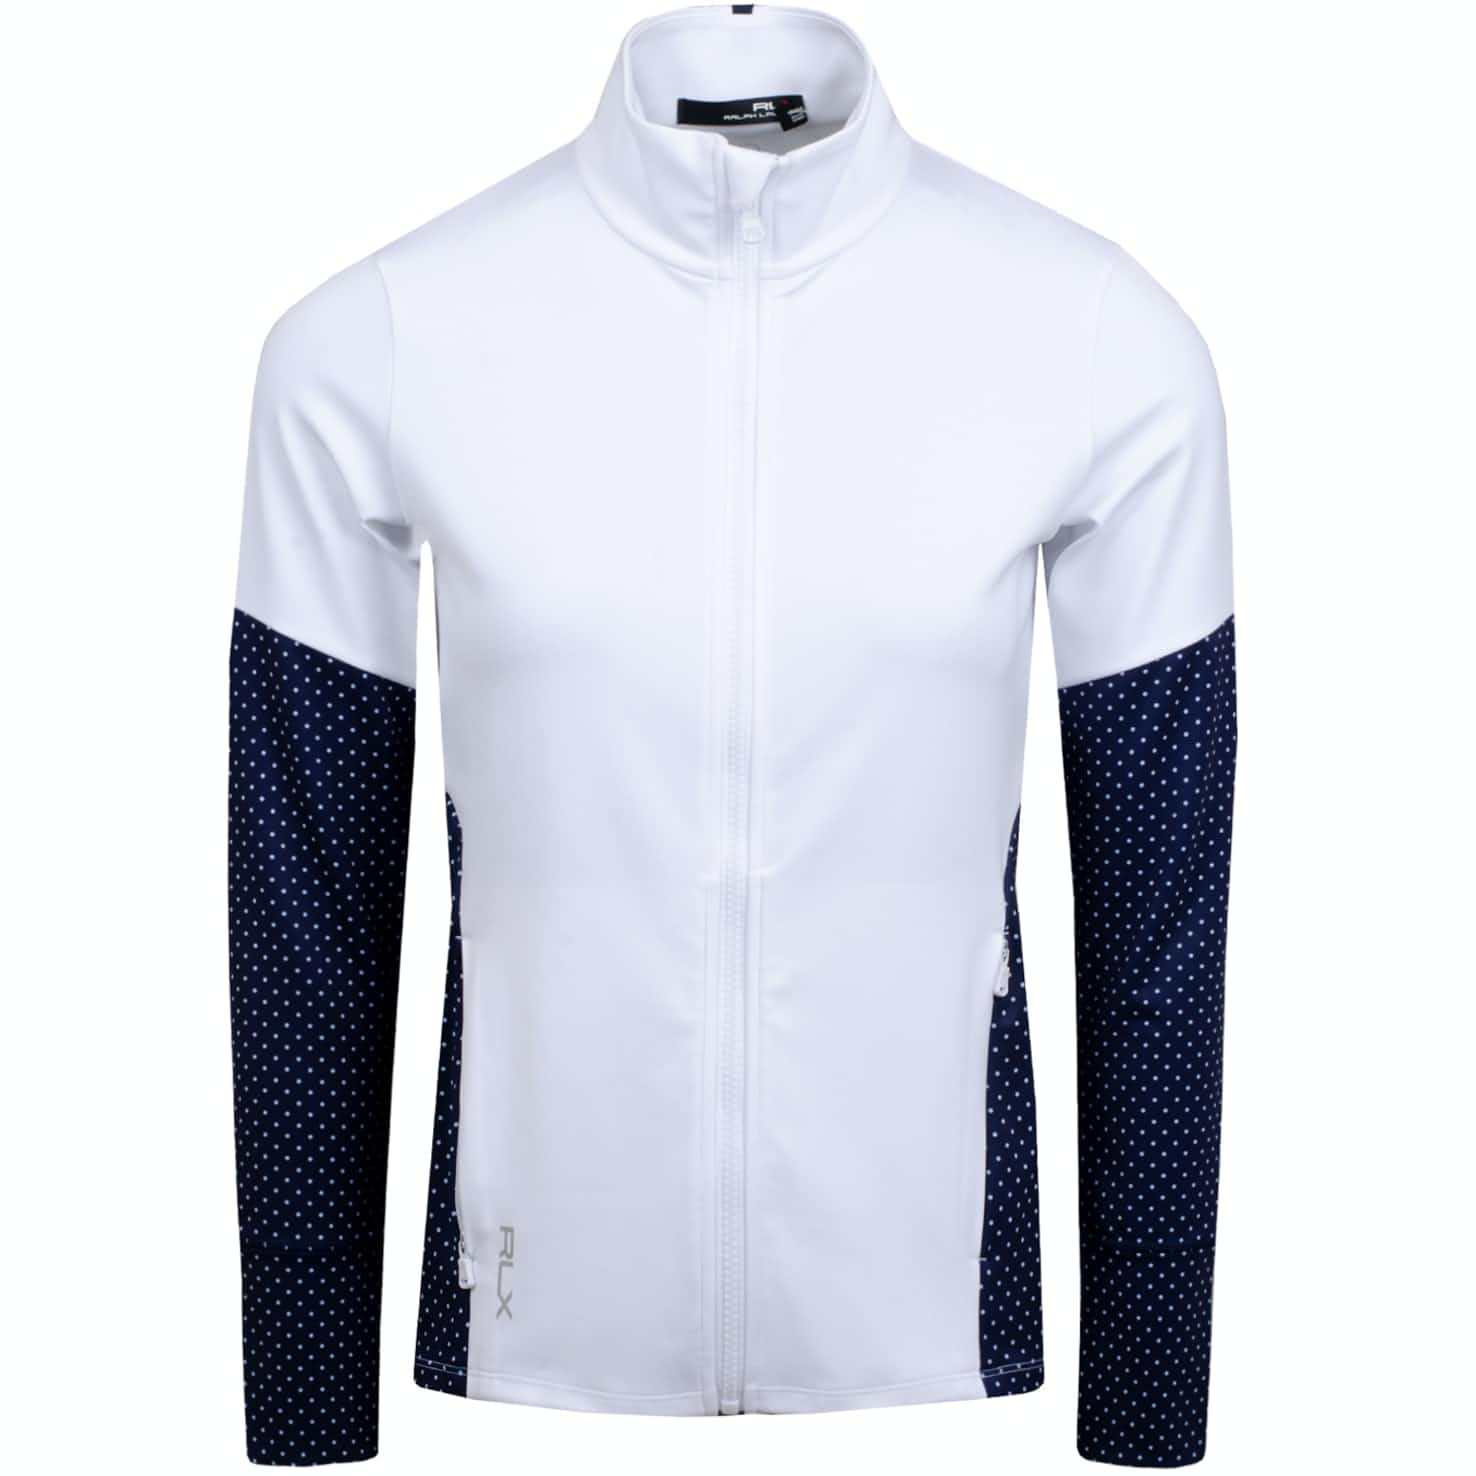 Womens Powerstretch Jersey Pure White/Navy Dot - AW19